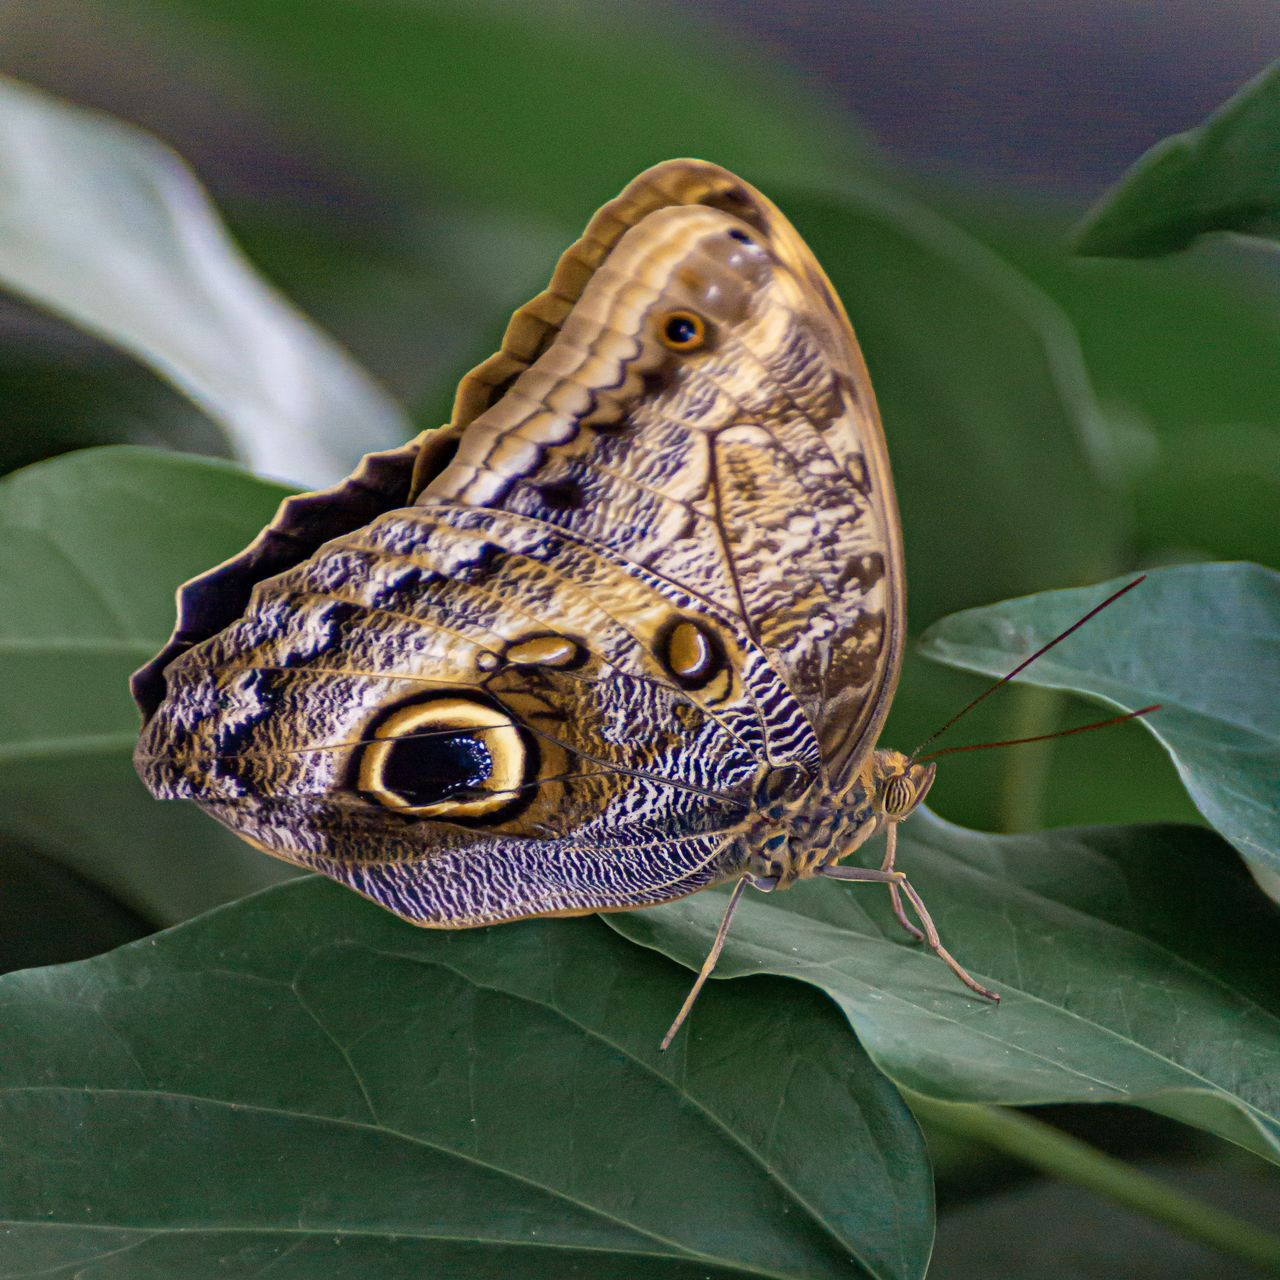 one animal, animal themes, plant part, animal, leaf, close-up, animals in the wild, animal wildlife, focus on foreground, green color, vertebrate, plant, no people, animal body part, nature, reptile, zoology, day, insect, outdoors, animal head, butterfly - insect, butterfly, animal eye